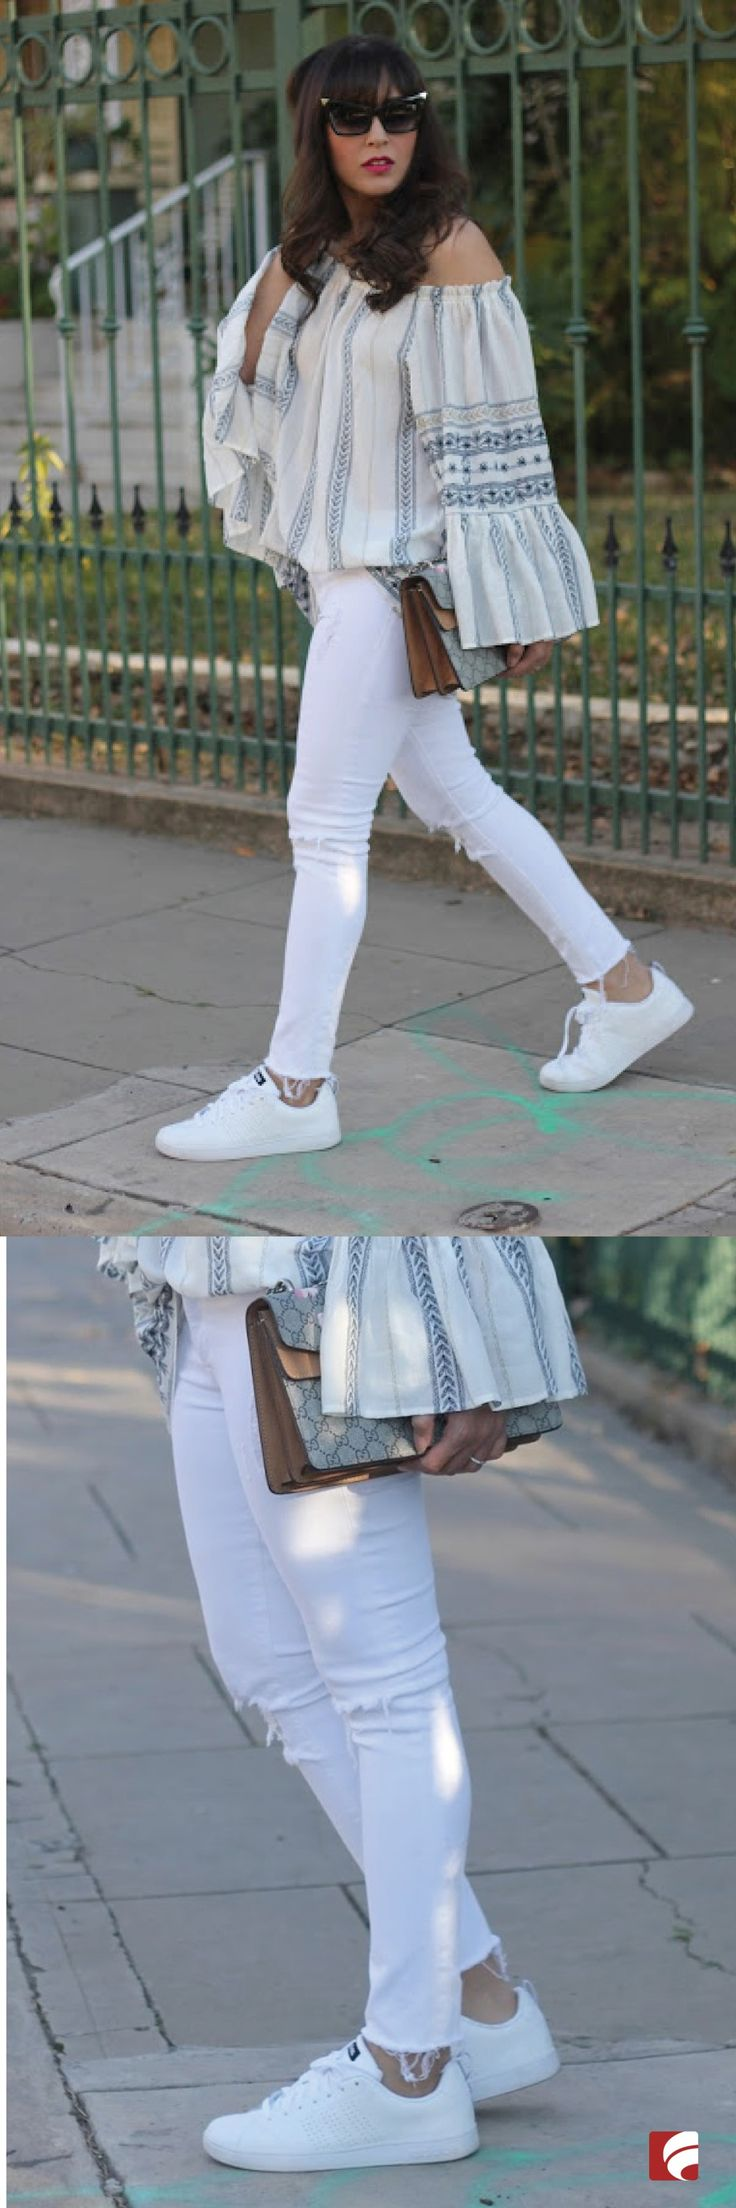 So chic, so clean and ready to be worn with anything: meet the adidas Neo Cloudfoam Advantage Clean Sneaker! Laura of Spanglish Fashion pairs her sneakers with an all-white ensemble, including distressed white jeans and a ruffled top for a chic everyday look that transitions perfectly from day to night. This shoe features a leather upper in a casual athletic sneaker style, lace-up front, and perforated three stripes detail.